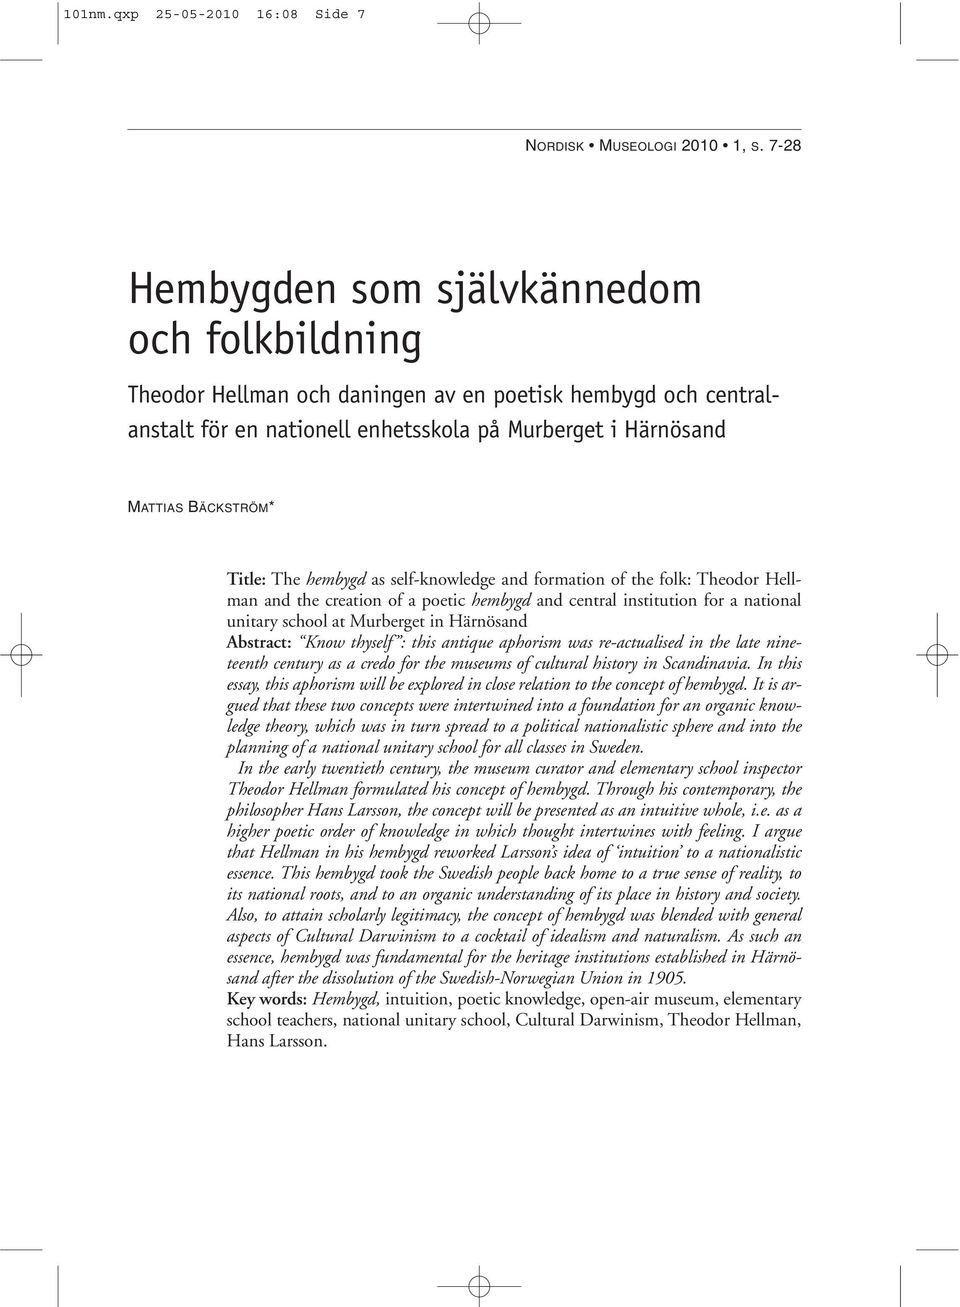 The hembygd as self-knowledge and formation of the folk: Theodor Hellman and the creation of a poetic hembygd and central institution for a national unitary school at Murberget in Härnösand Abstract: